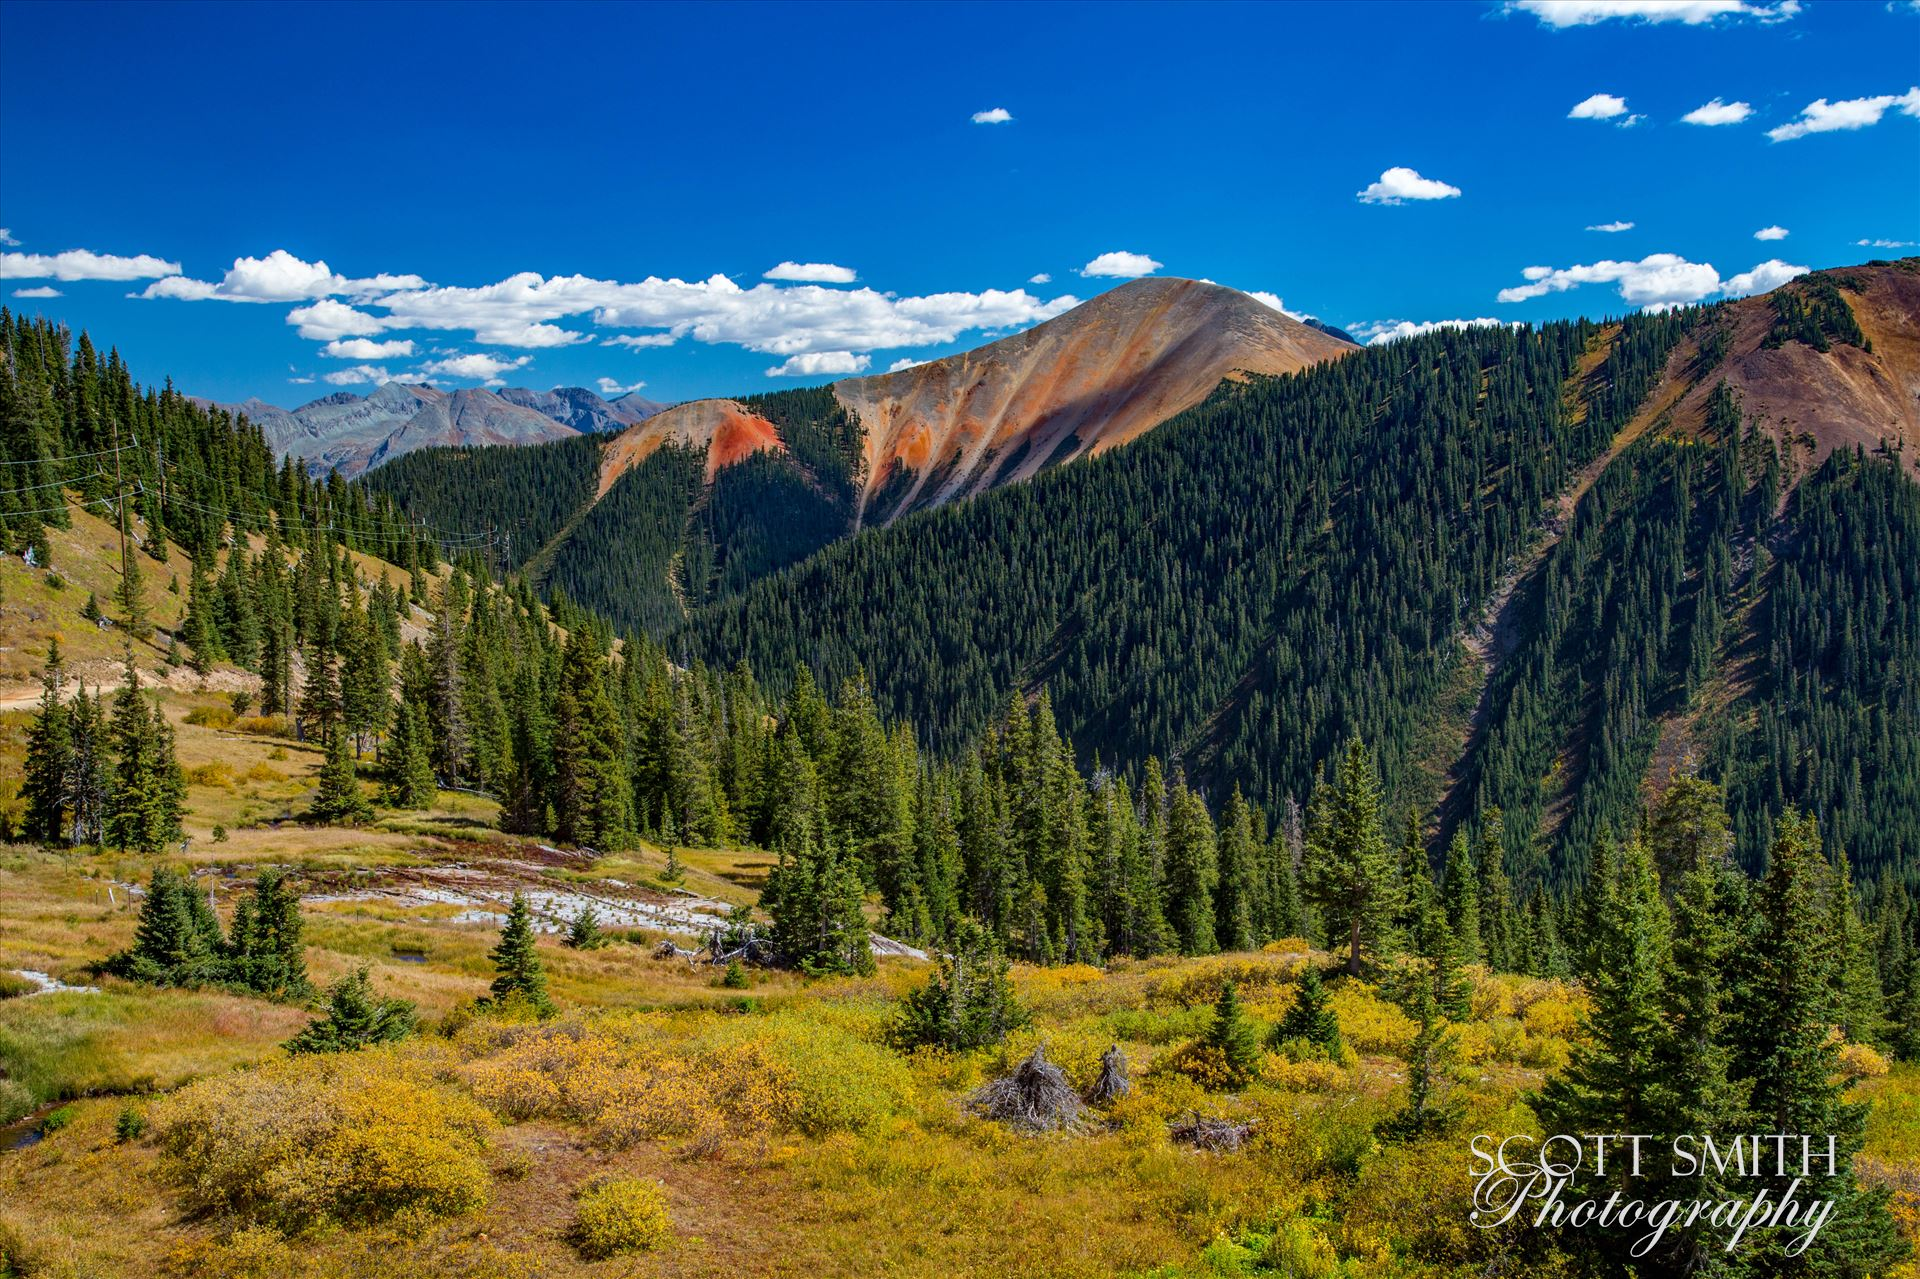 Ophir Pass 5 - Ophir Pass, featuring one of the red mountains, between Ouray and Silverton Colorado in the fall. by Scott Smith Photos